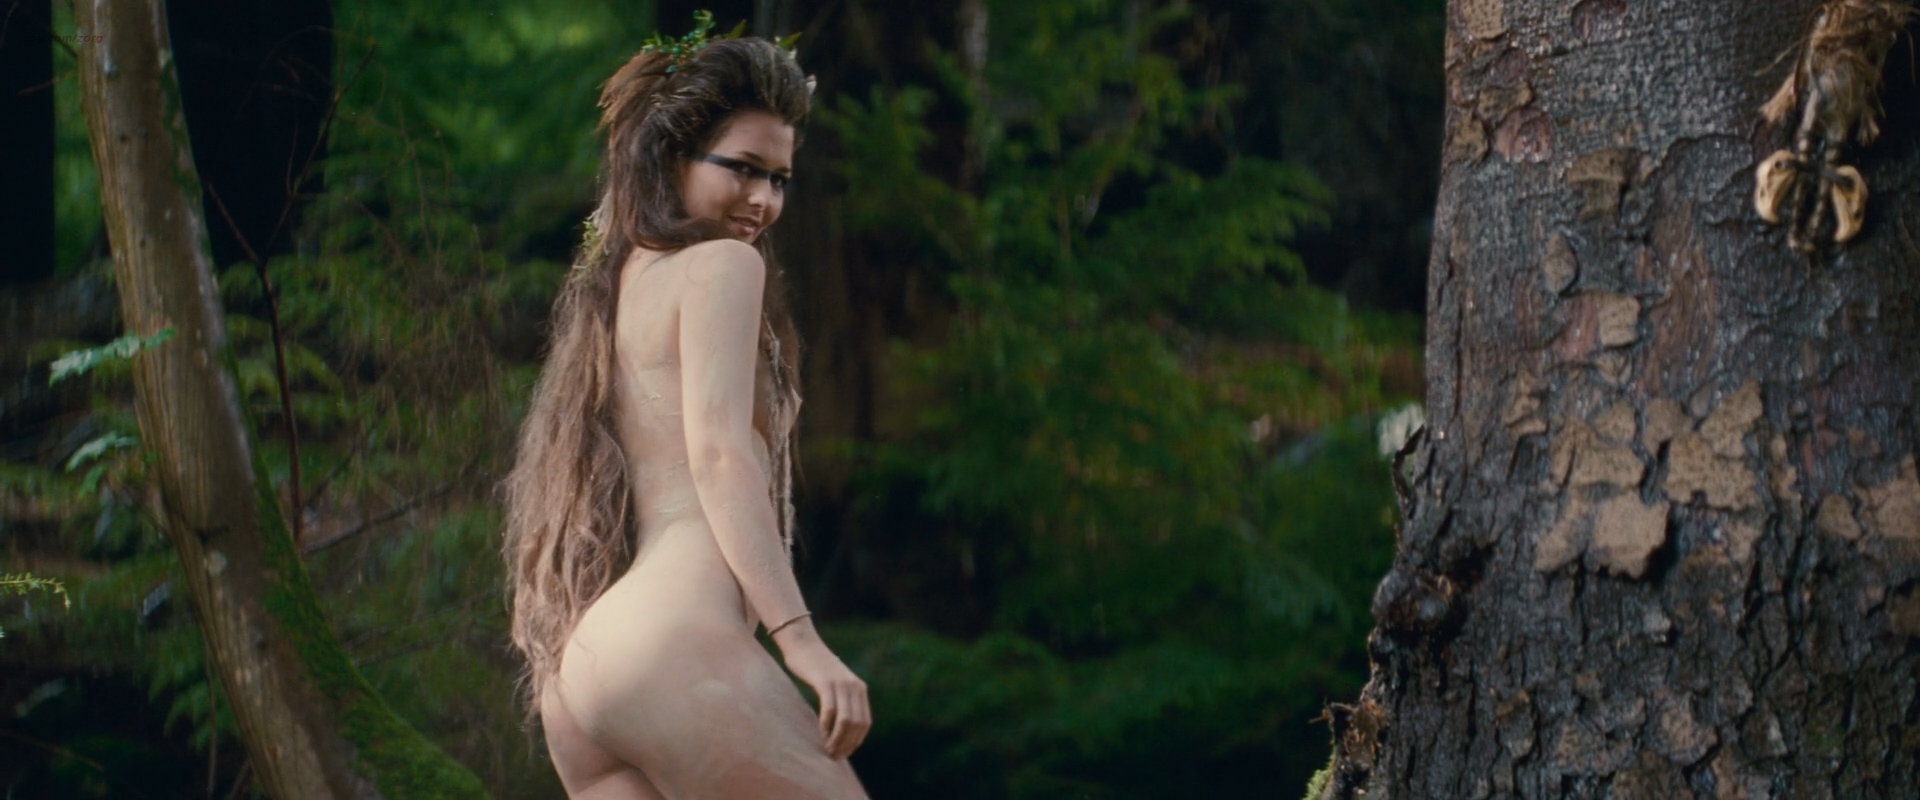 Natalie portman nude in your highness